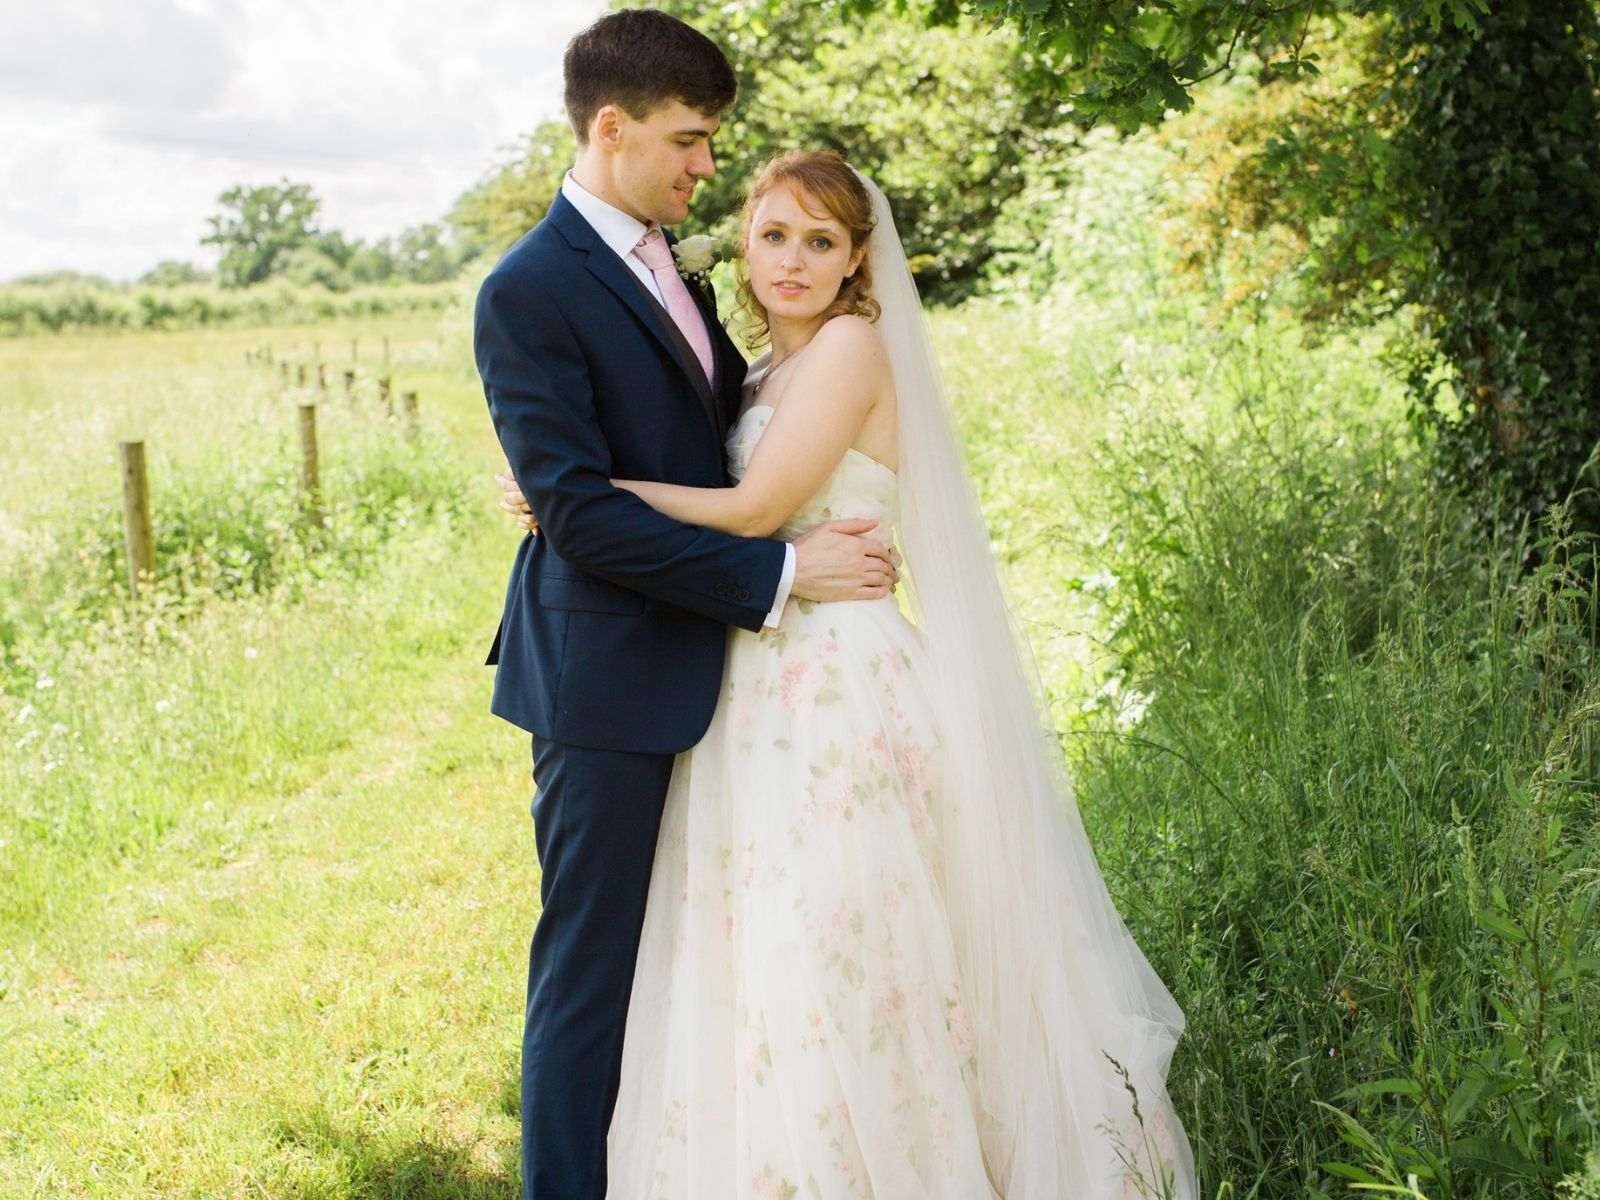 Rose-covered dress by Loulou Bride